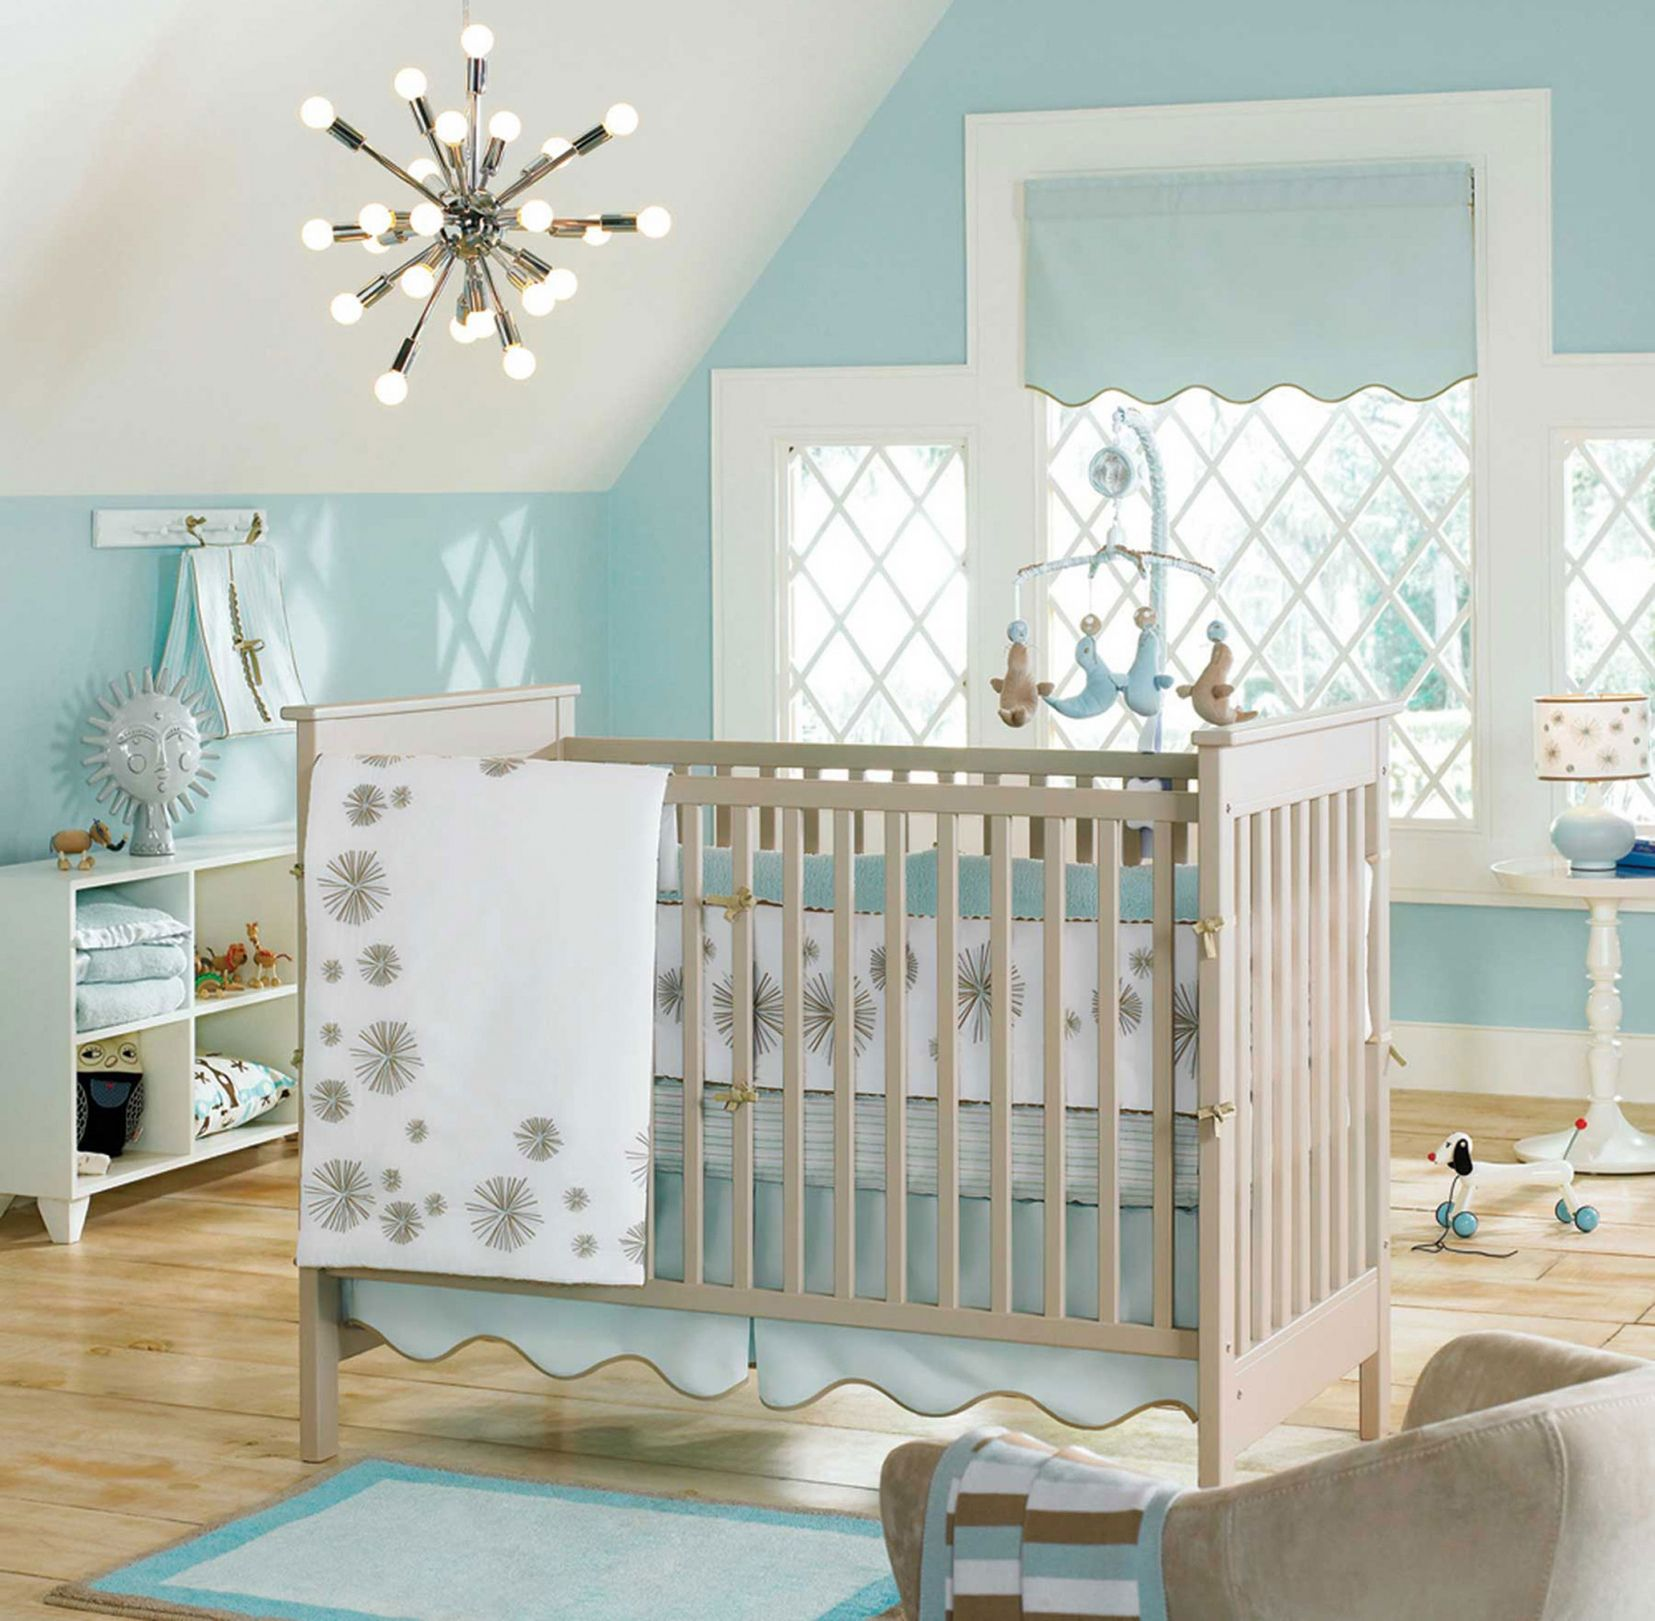 2019 Design Baby Room Online Vanity Ideas for Bedroom Check more